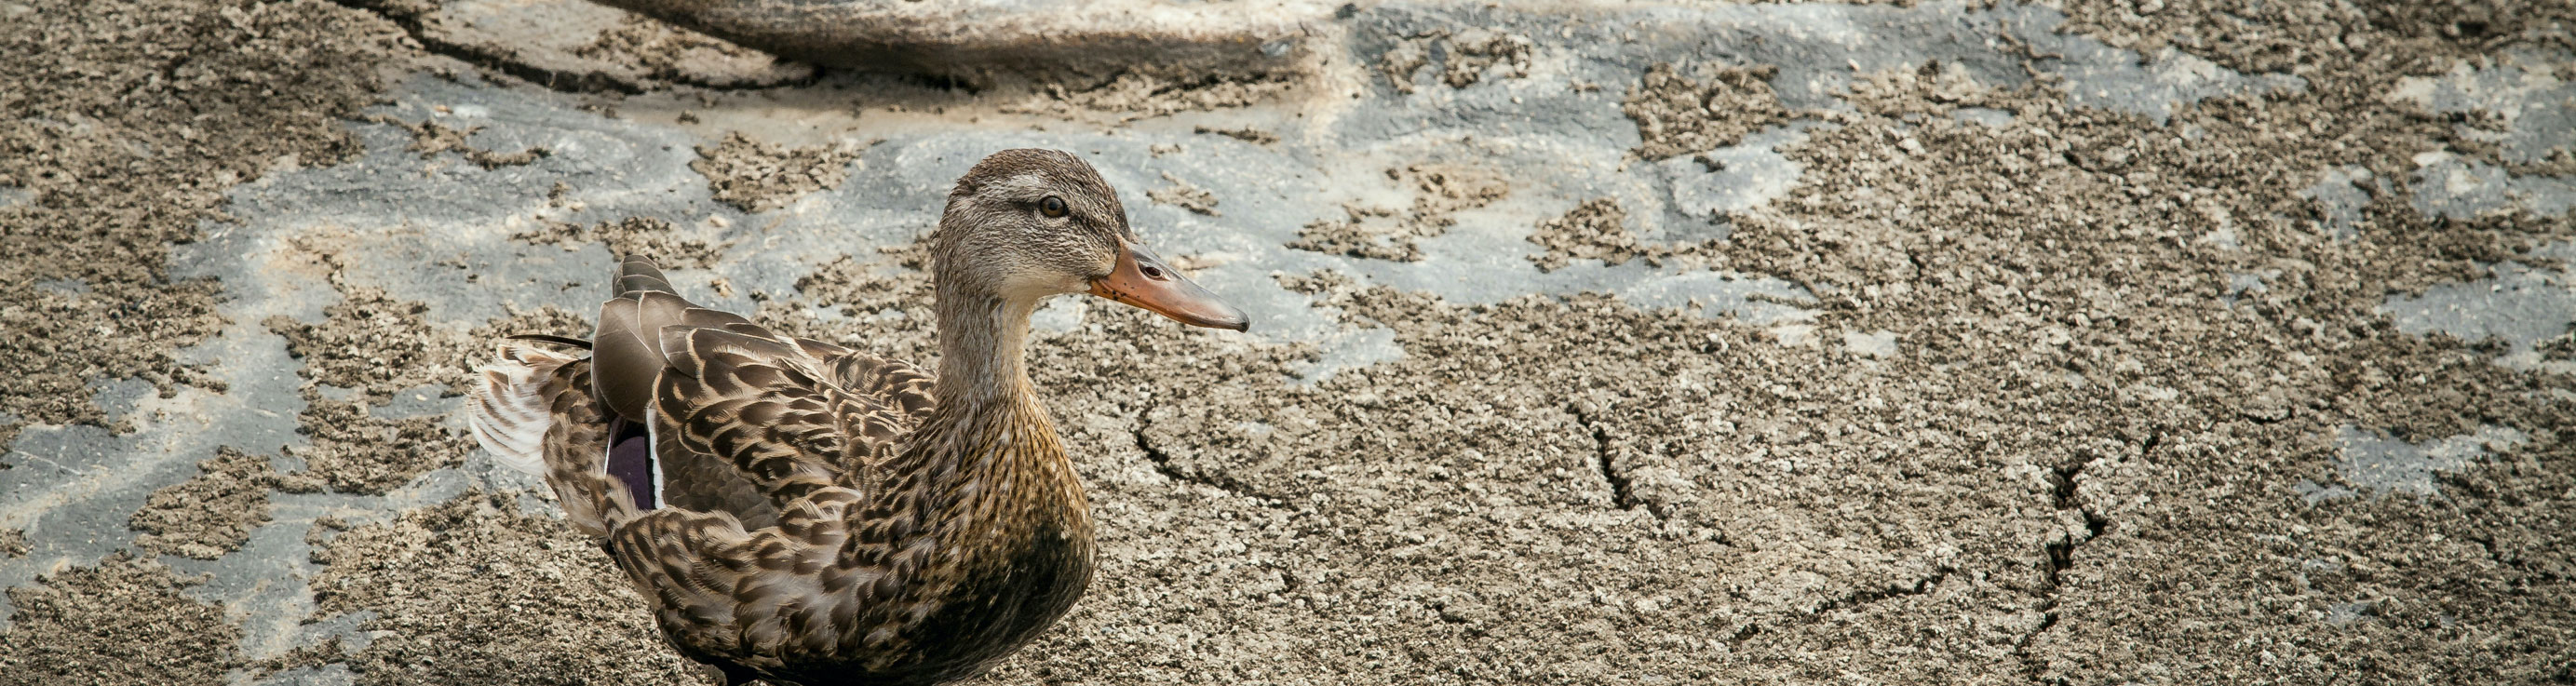 A duck stands in a dried out wetland area impacted by drought